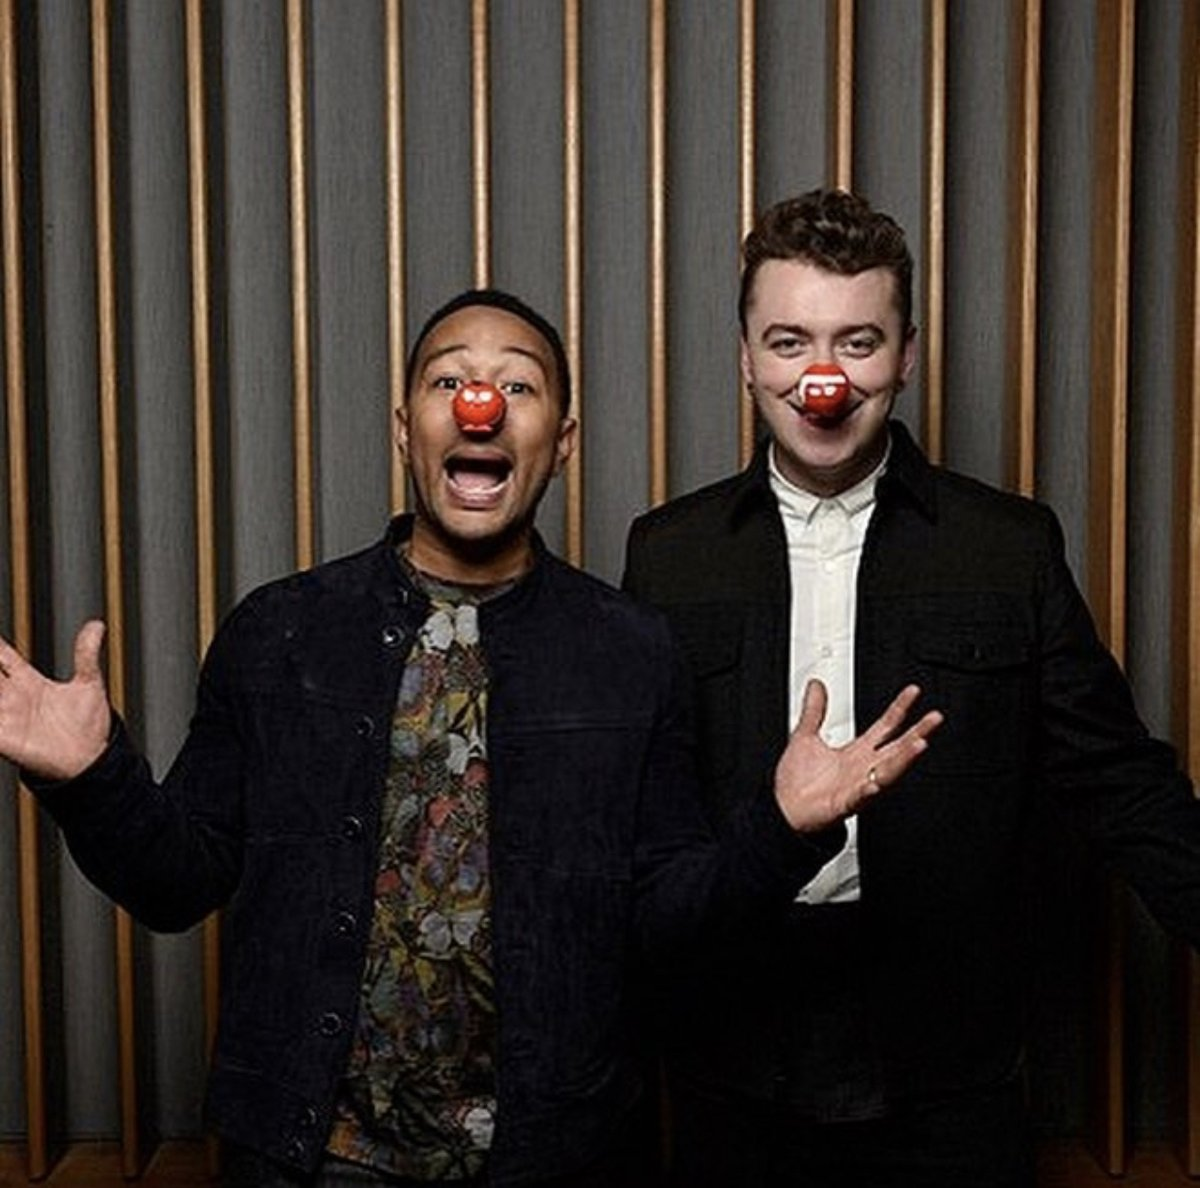 #TBT to 2015 with @samsmith and @johnlegend in Studio A re-recording 'Lay Me Down' for #rednoseday Check out our Facebook page for the full video! https://t.co/YxX1eW4syL